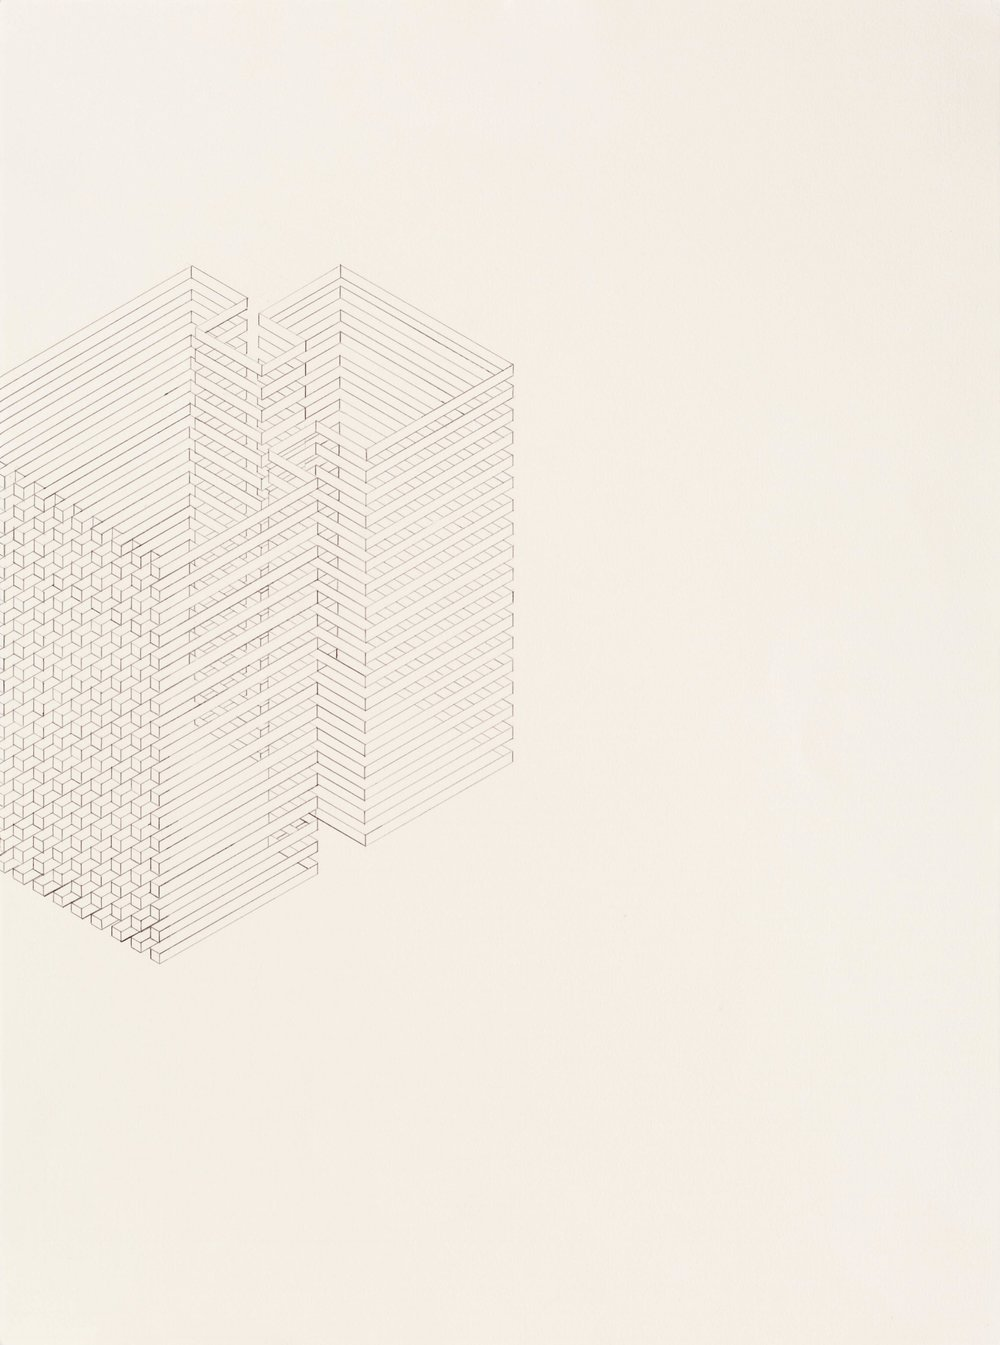 Construction 1, 2011  graphite on printmaking paper  30 x 22 inches